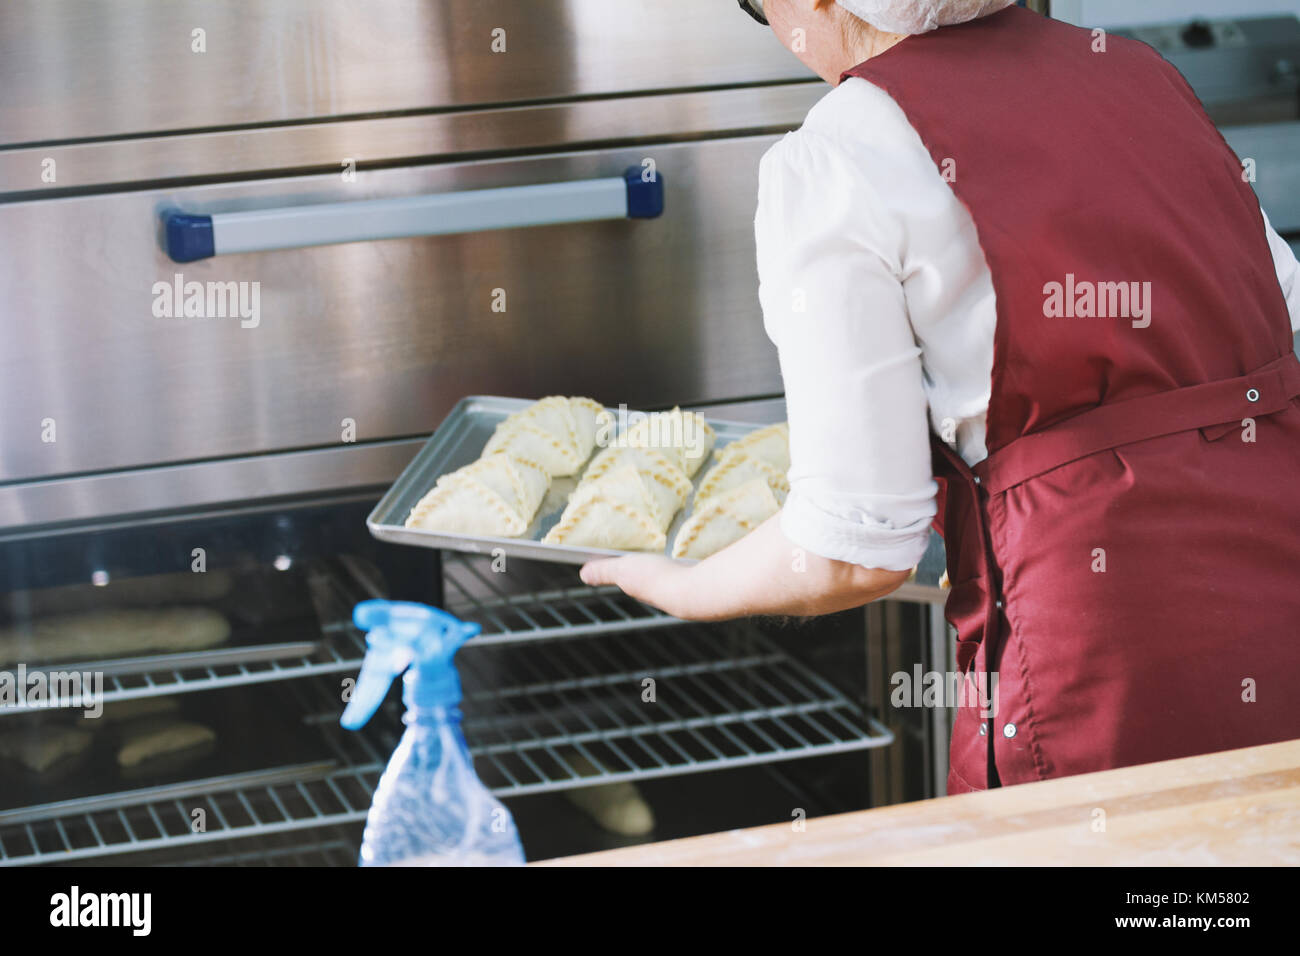 Woman puts raw meat pies in the stove - Stock Image